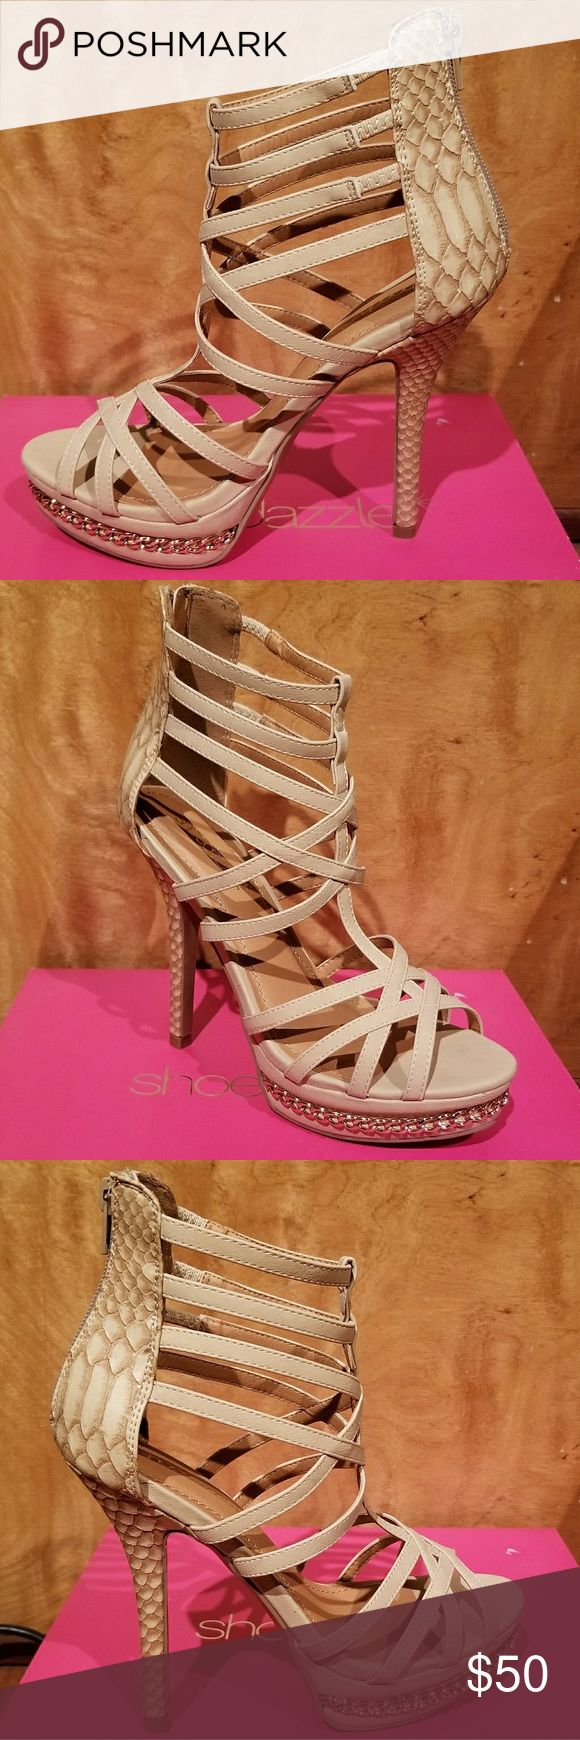 """Brand New nude strappy heels Brand new in box, never worn! Nude strappy platform heels with zip up the back, snake print heel & gold chain accent along platform. 5"""" height, looks amazing dressed up, or with jeans! Shoe Dazzle Shoes Platforms"""